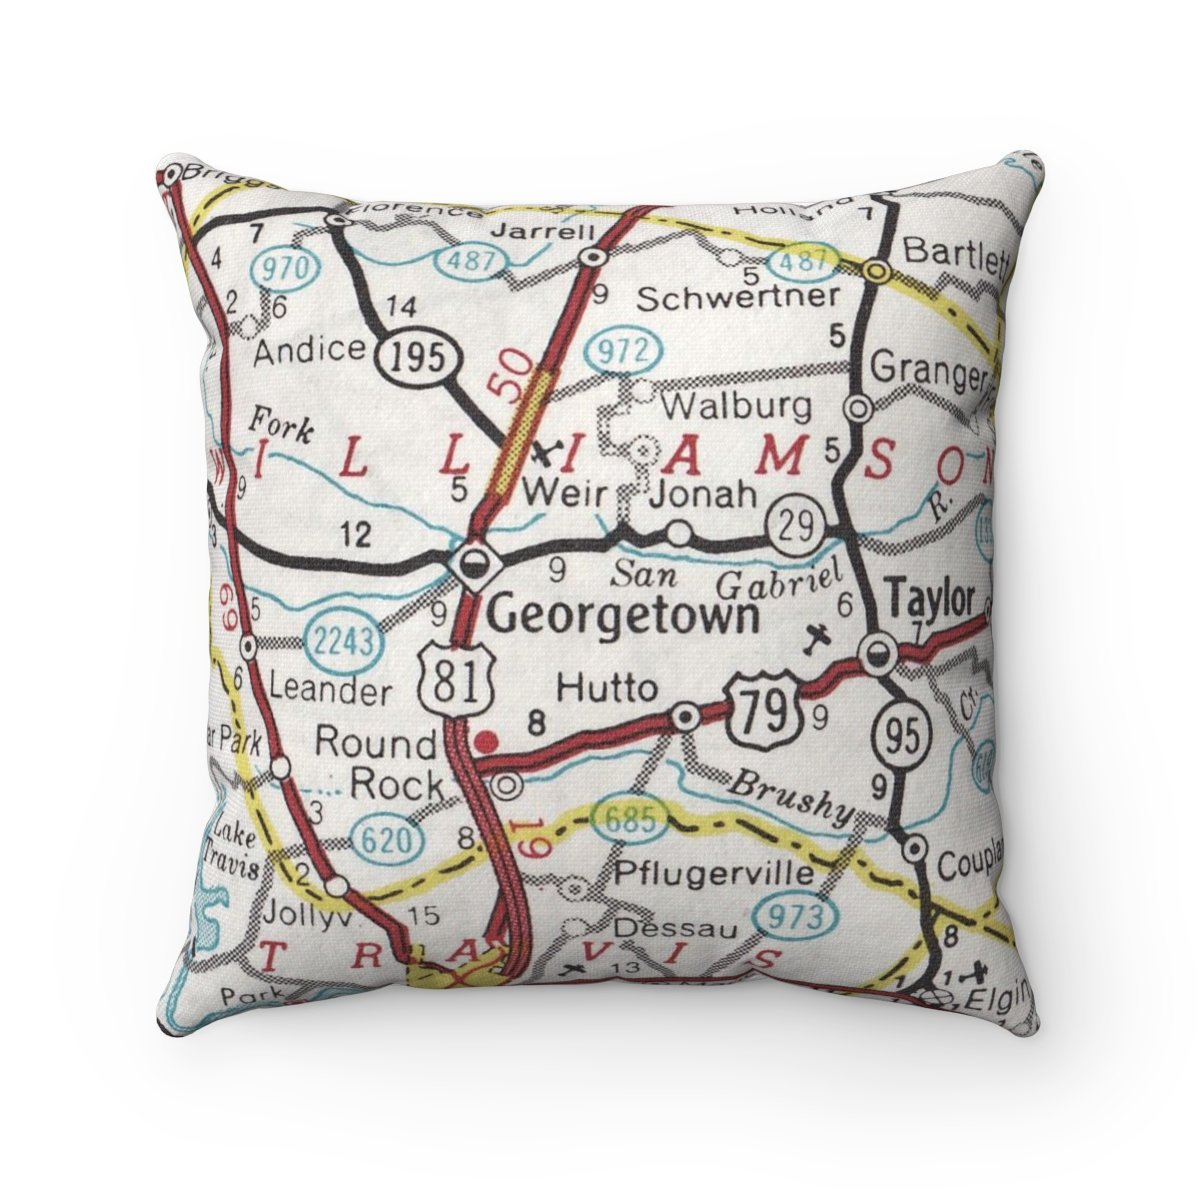 Georgetown Texas Vintage Map Pillow Georgetown Pillow   Etsy - Texas Map Pillow